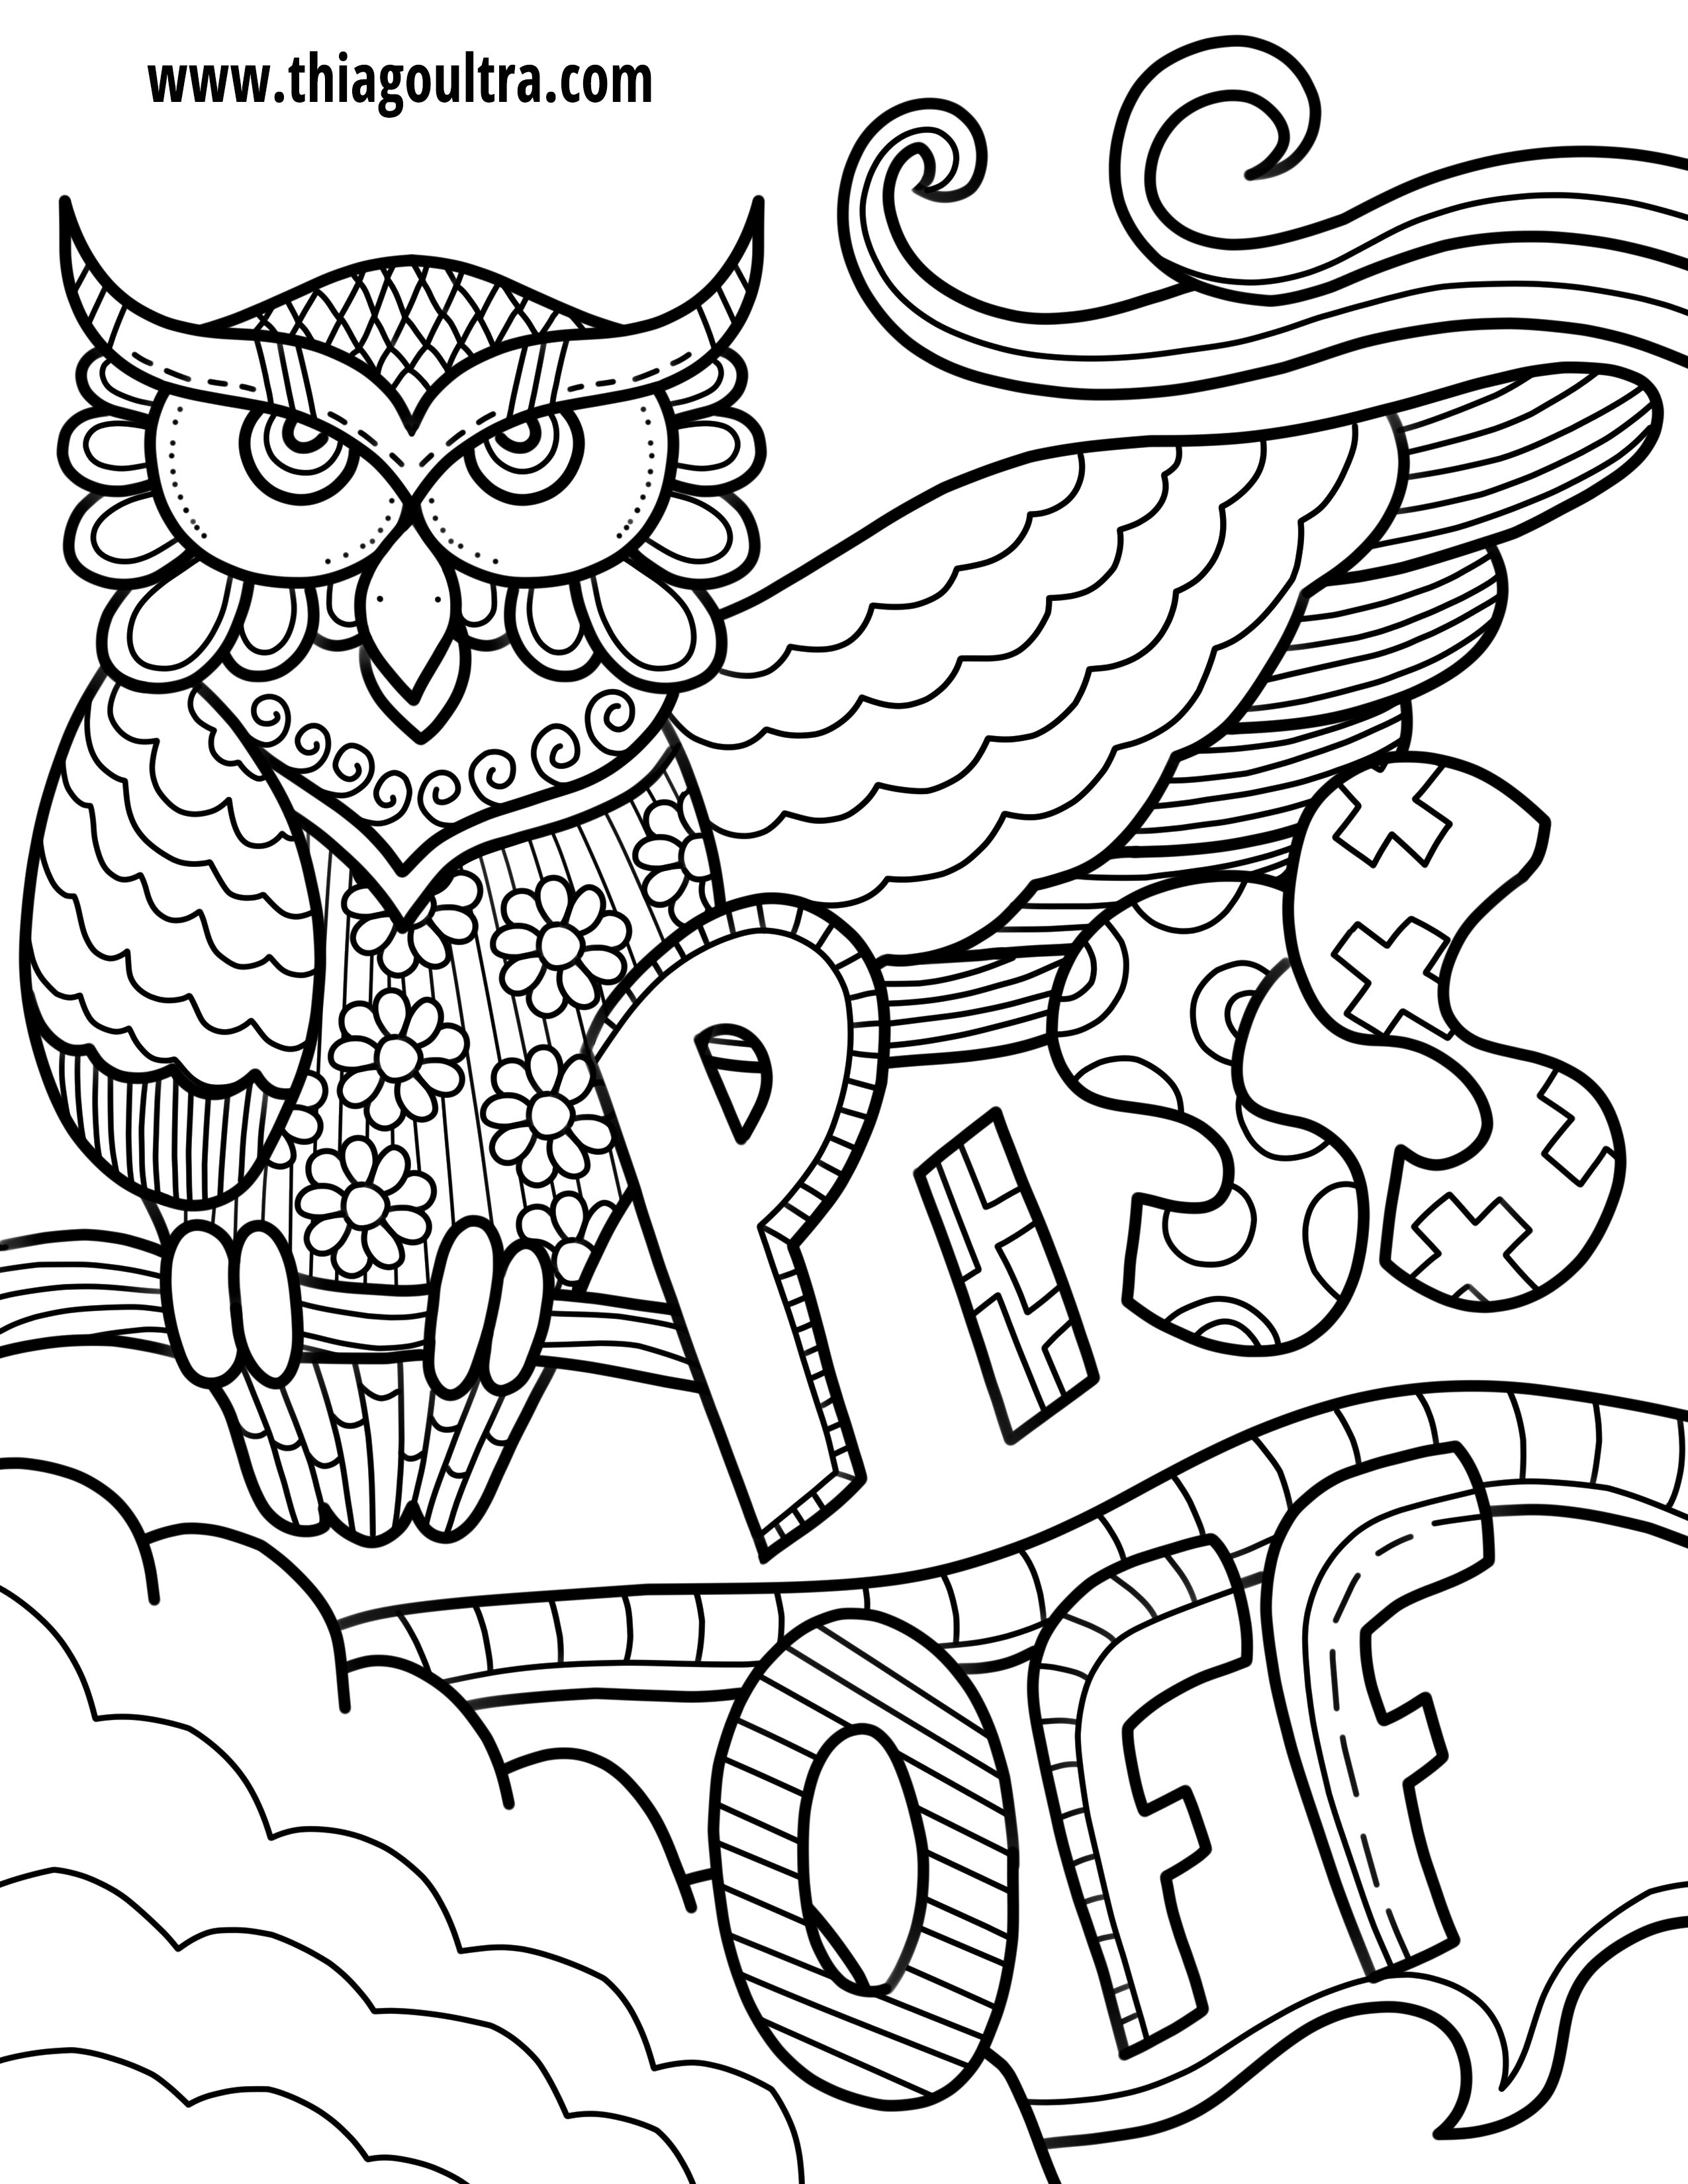 Curse Word Coloring Pages At Getdrawings Com Free For Personal Use